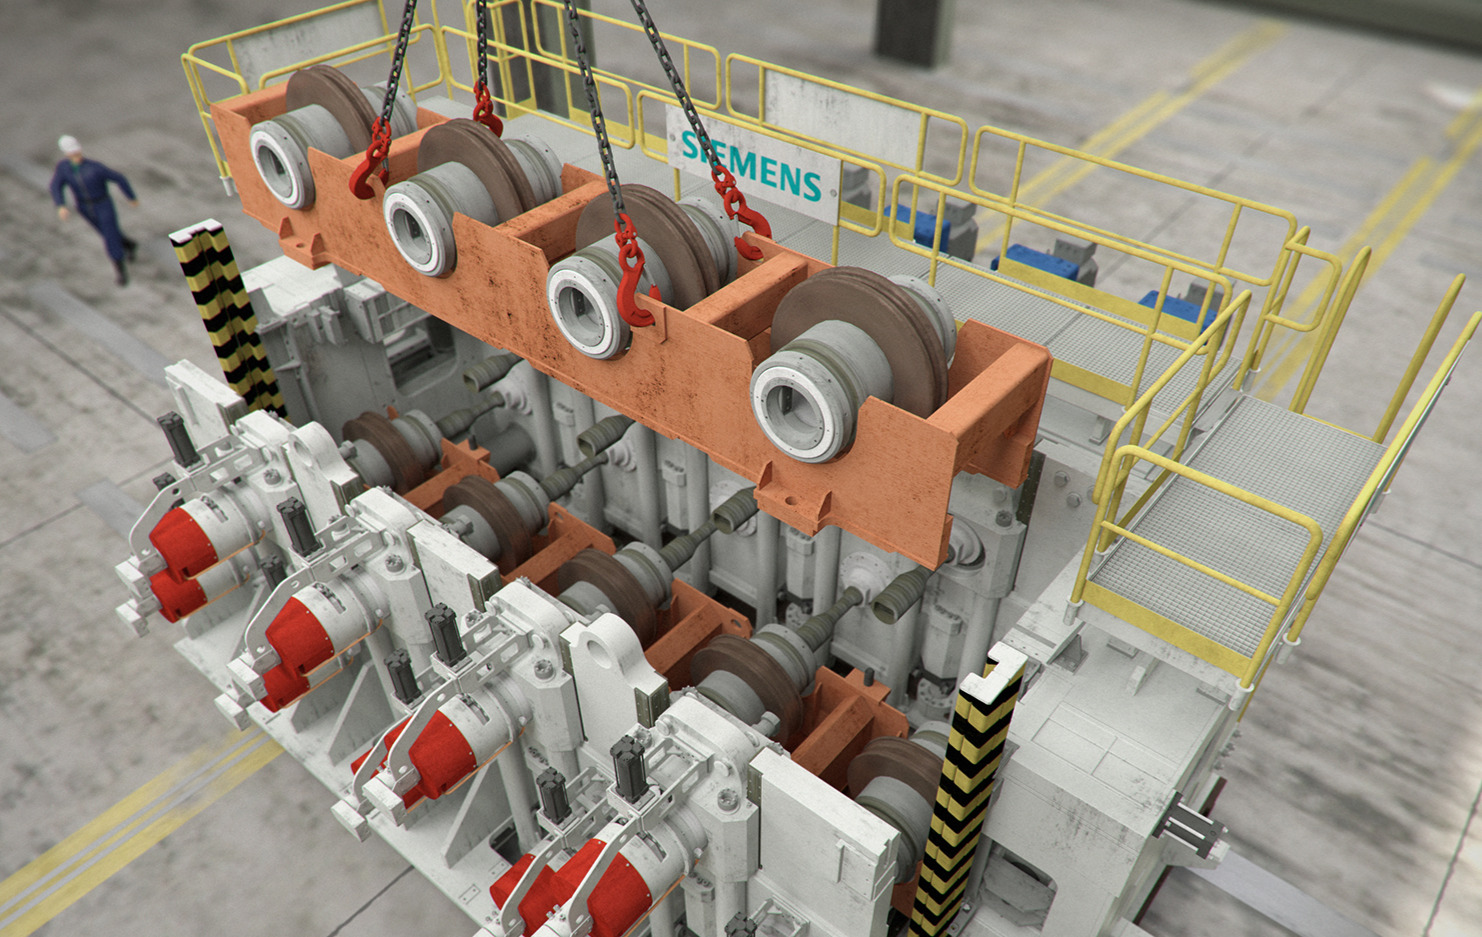 3D MODEL AND RENDERING OF INDUSTRIAL PRODUCTS